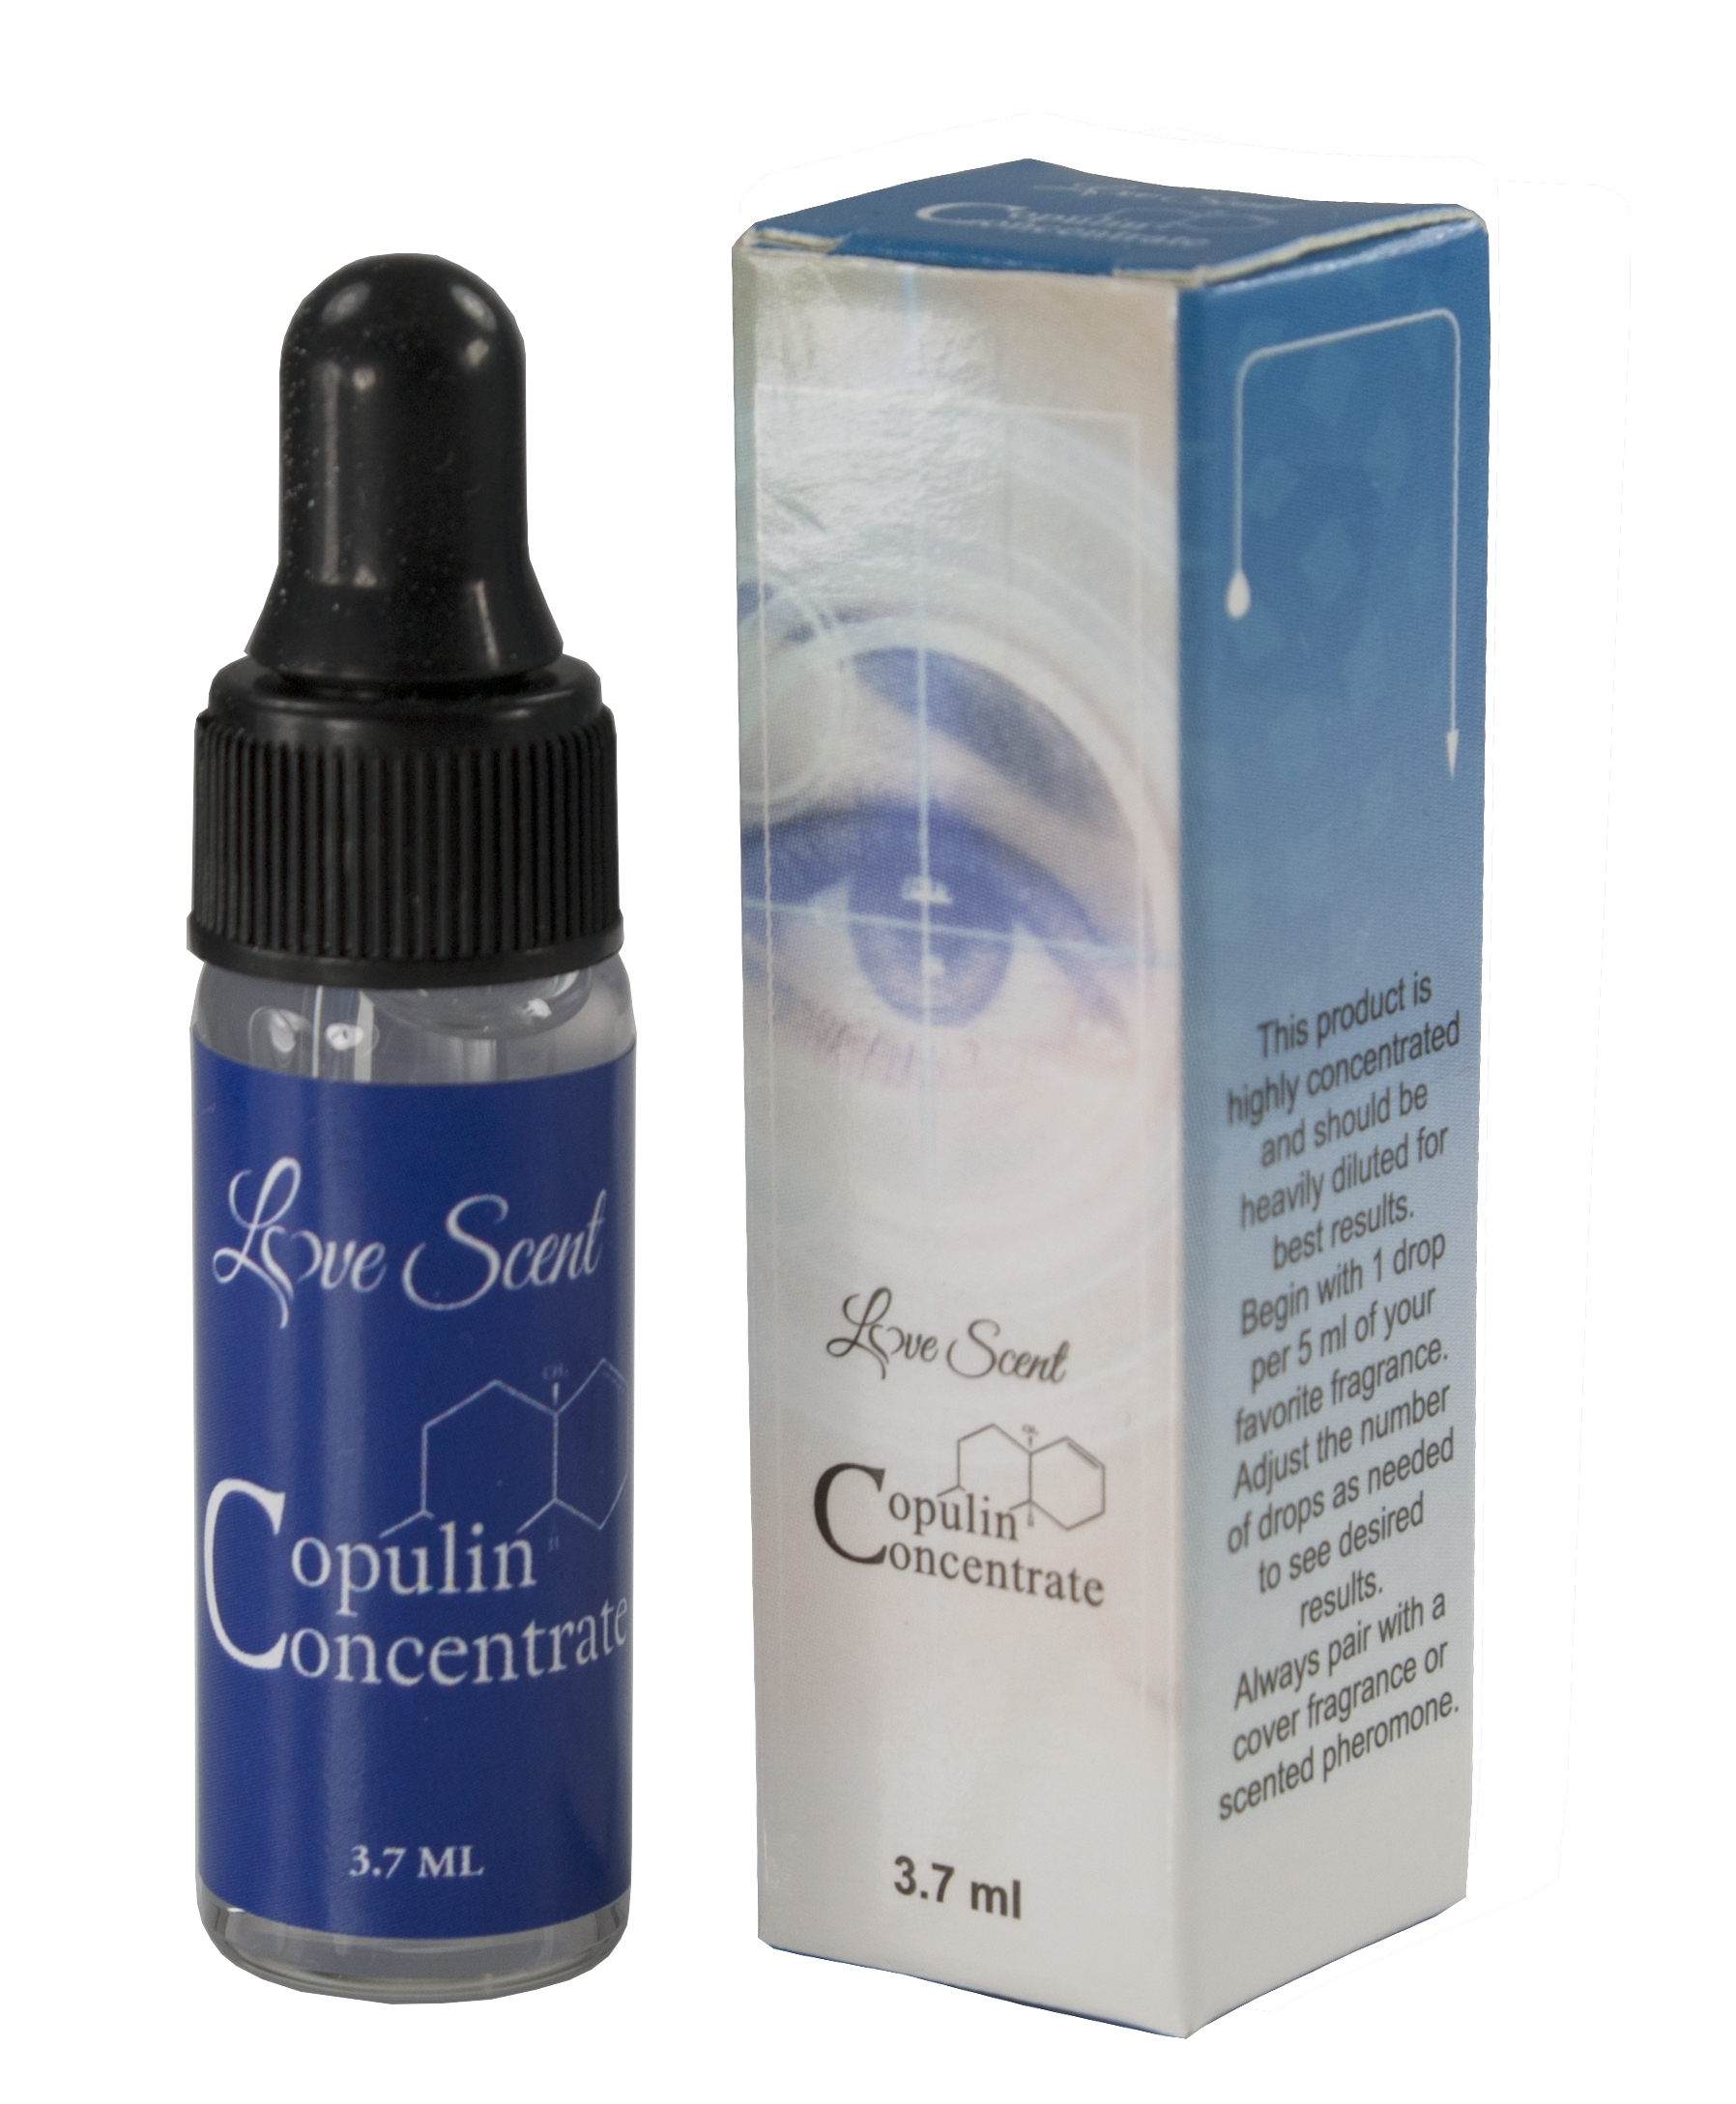 Love Scent coupon: Love Scent Copulin Concentrate